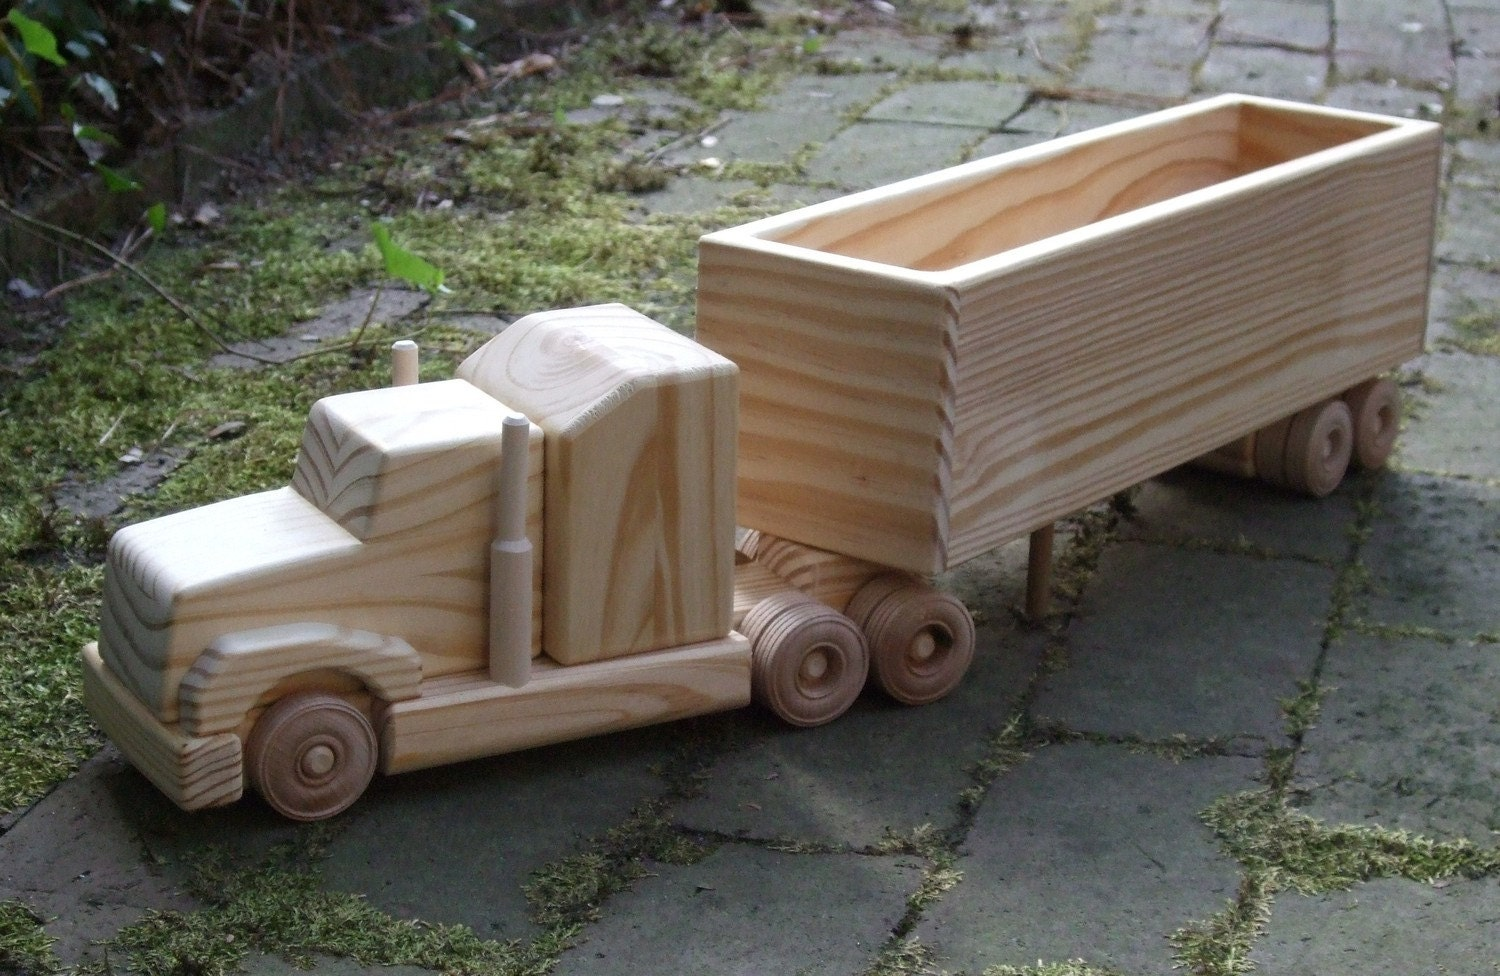 Wooden Toy Trucks Making wooden toy trucks quick woodworking projects